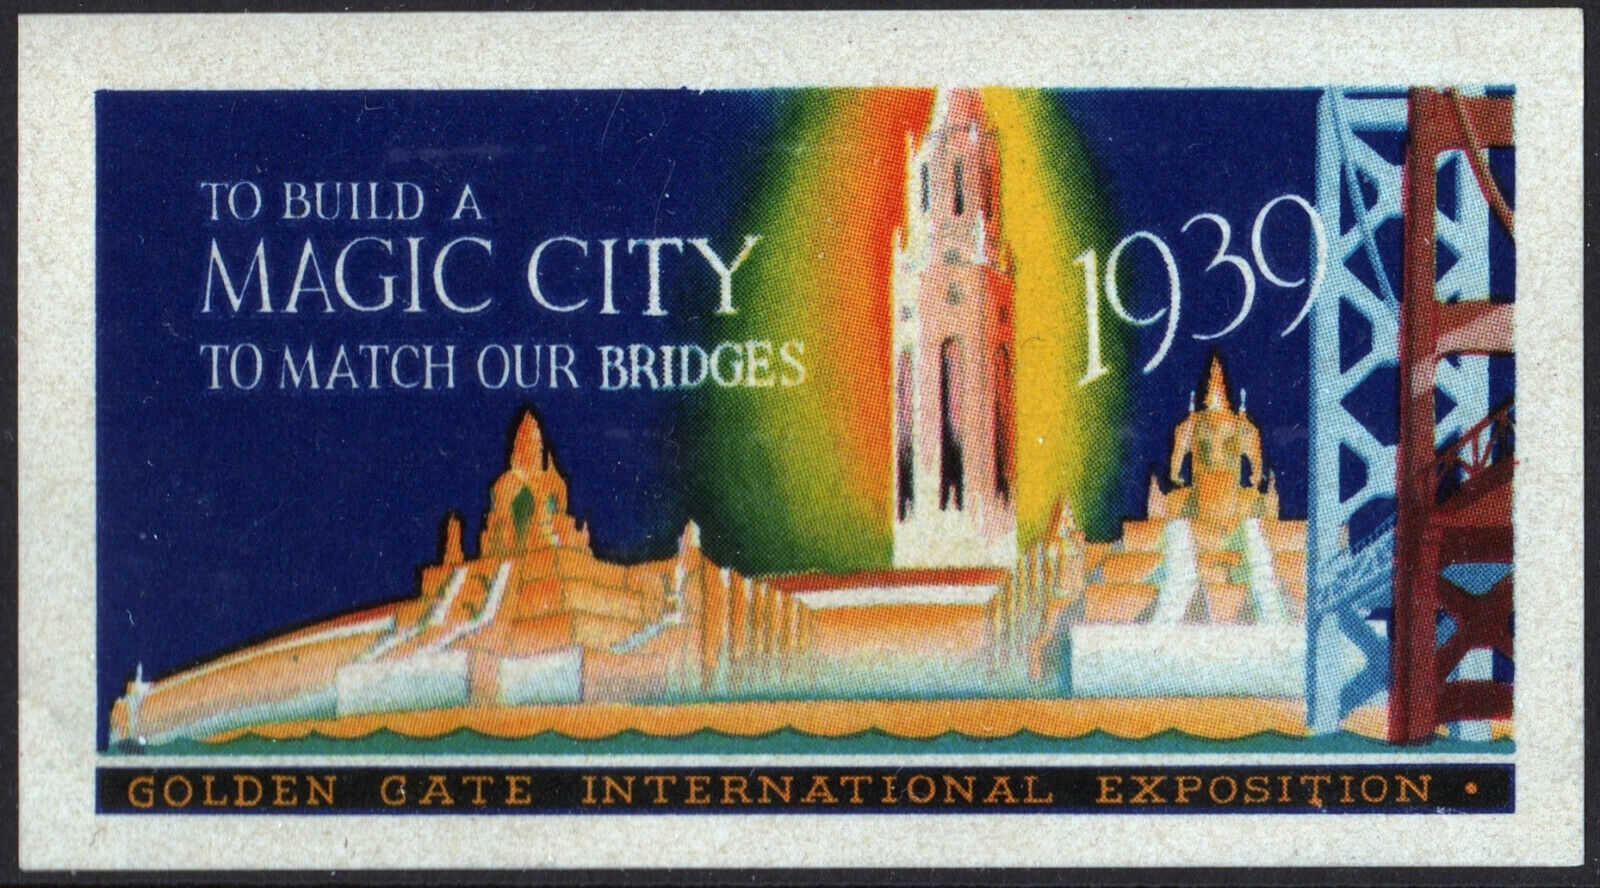 Golden Gate Exposition Poster Stamp To Build A Magic City 1939 MNH - $7.00